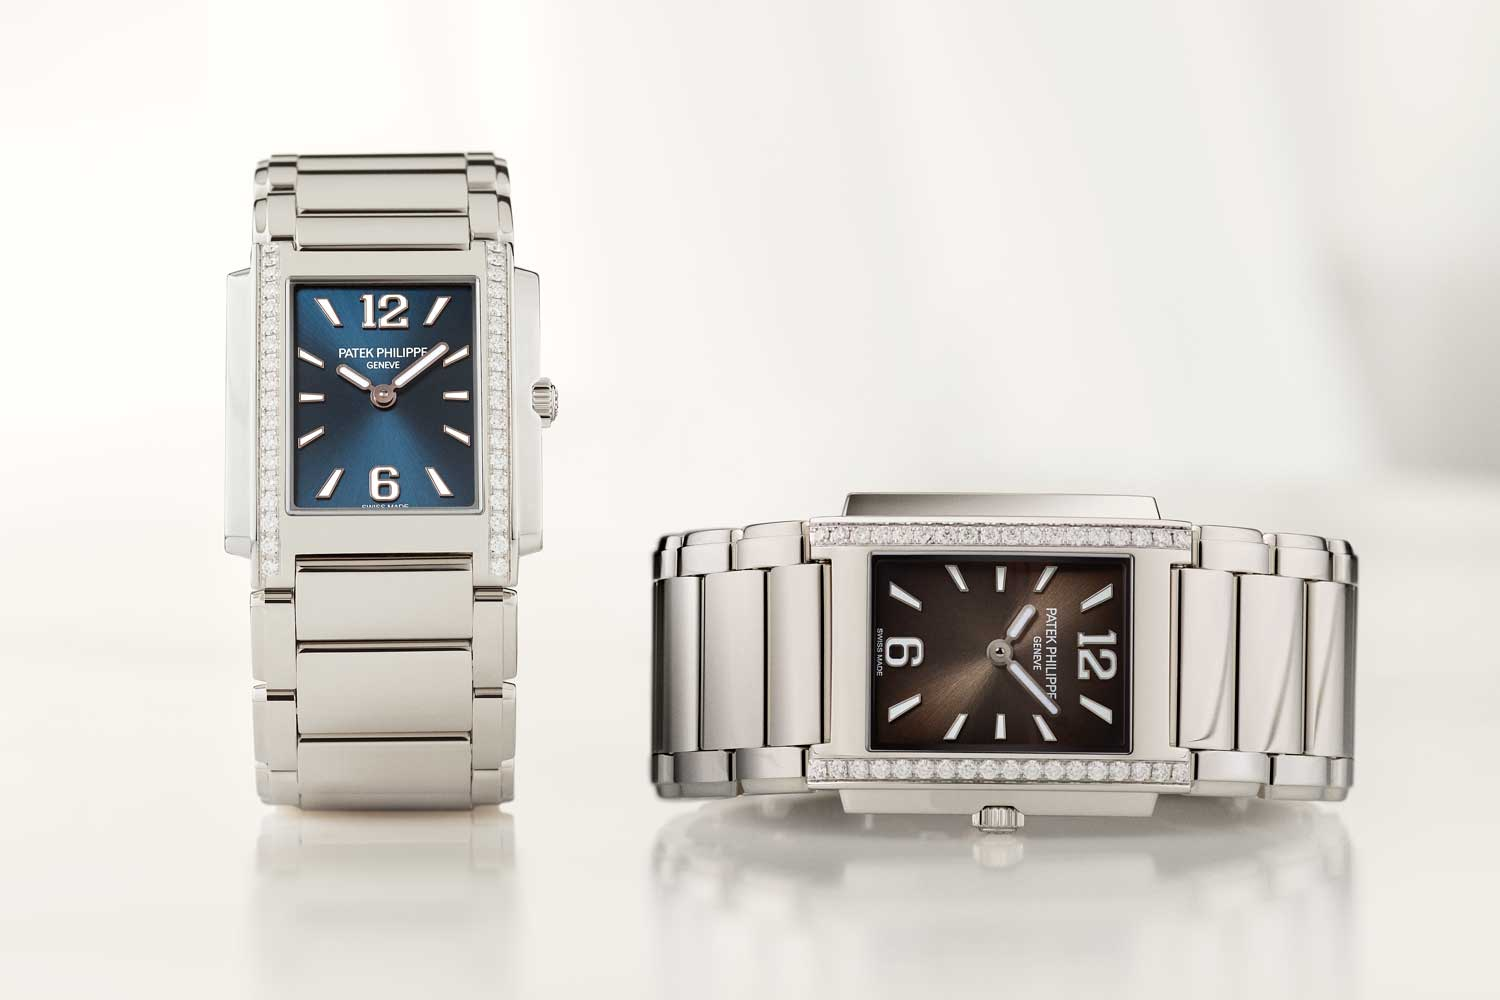 Patek Philippe Twenty~4 reference 4910/1200A-001 with blue sunburst and reference 4910/1200A-010 with gray sunburst dial